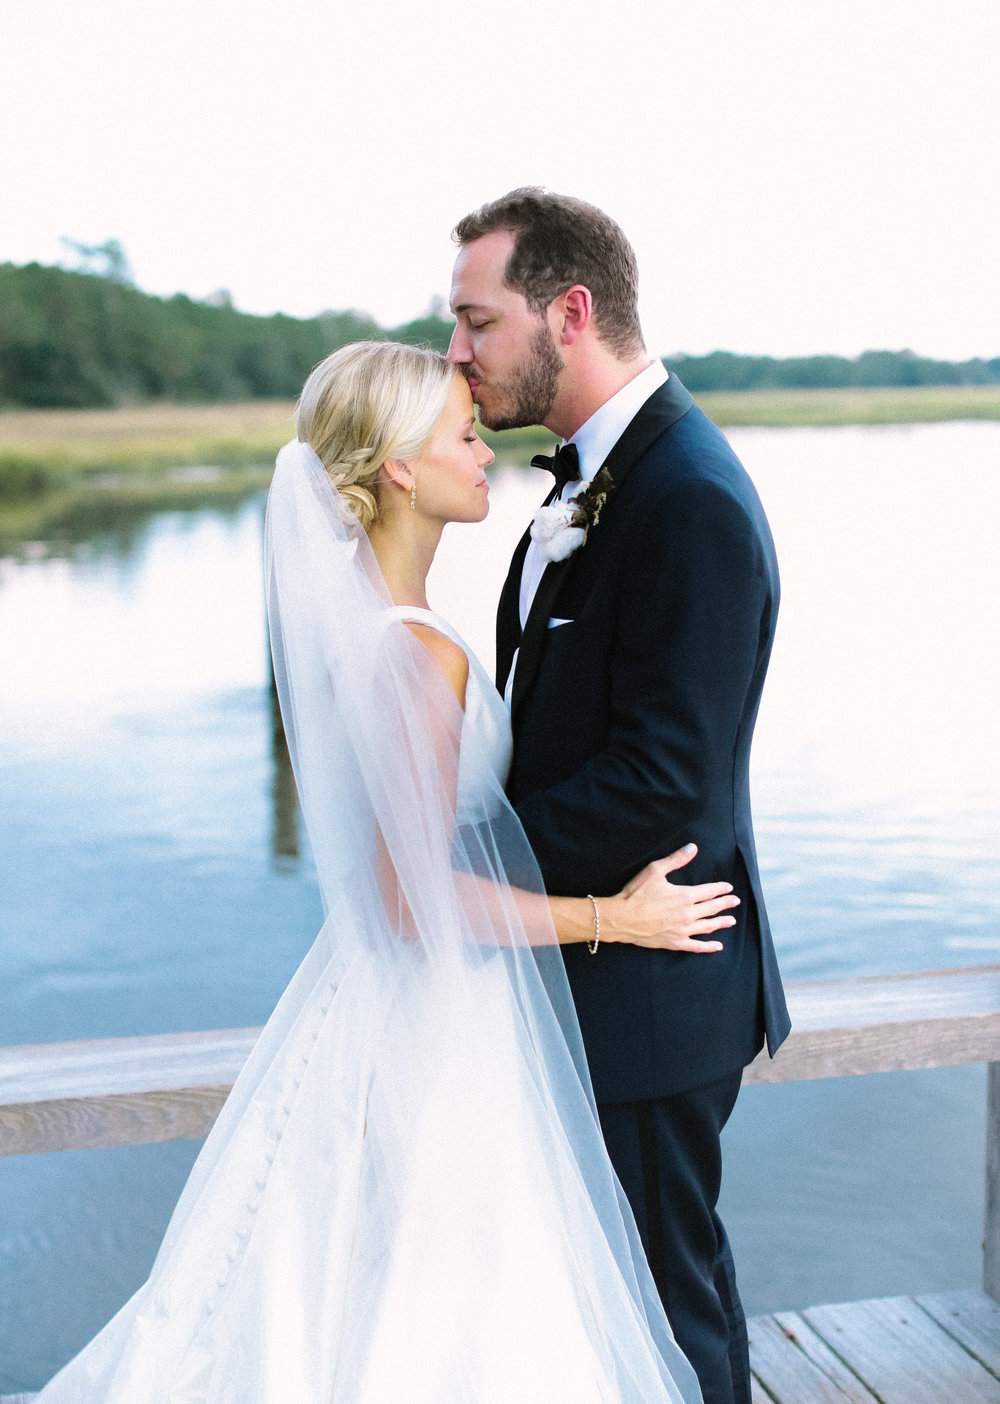 Wedding portraits at The Cotton Dock in Charleston SC  //  Wedding photography by Landon Jacob  //  A Lowcountry Wedding Magazine